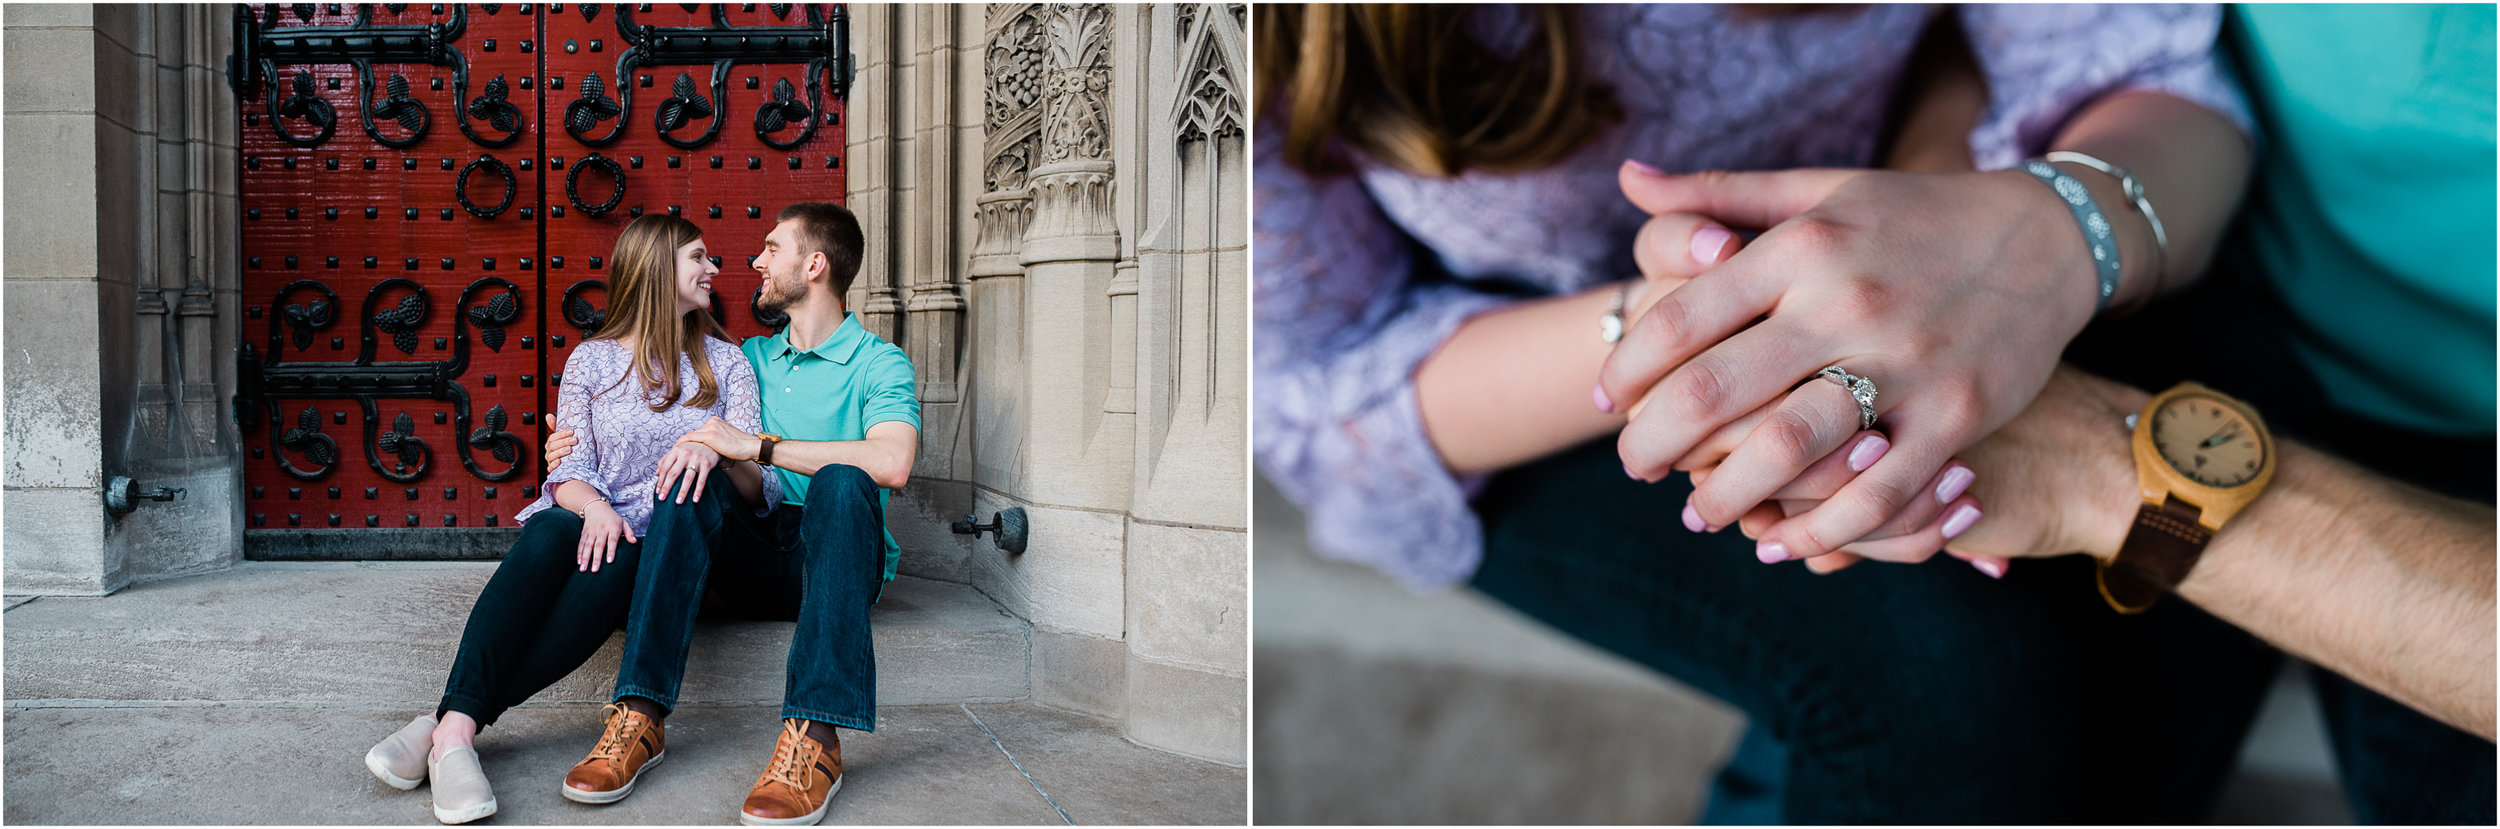 Pittsburgh Engagement Photographer, Pitt campus, Cathedral of Learning.jpg